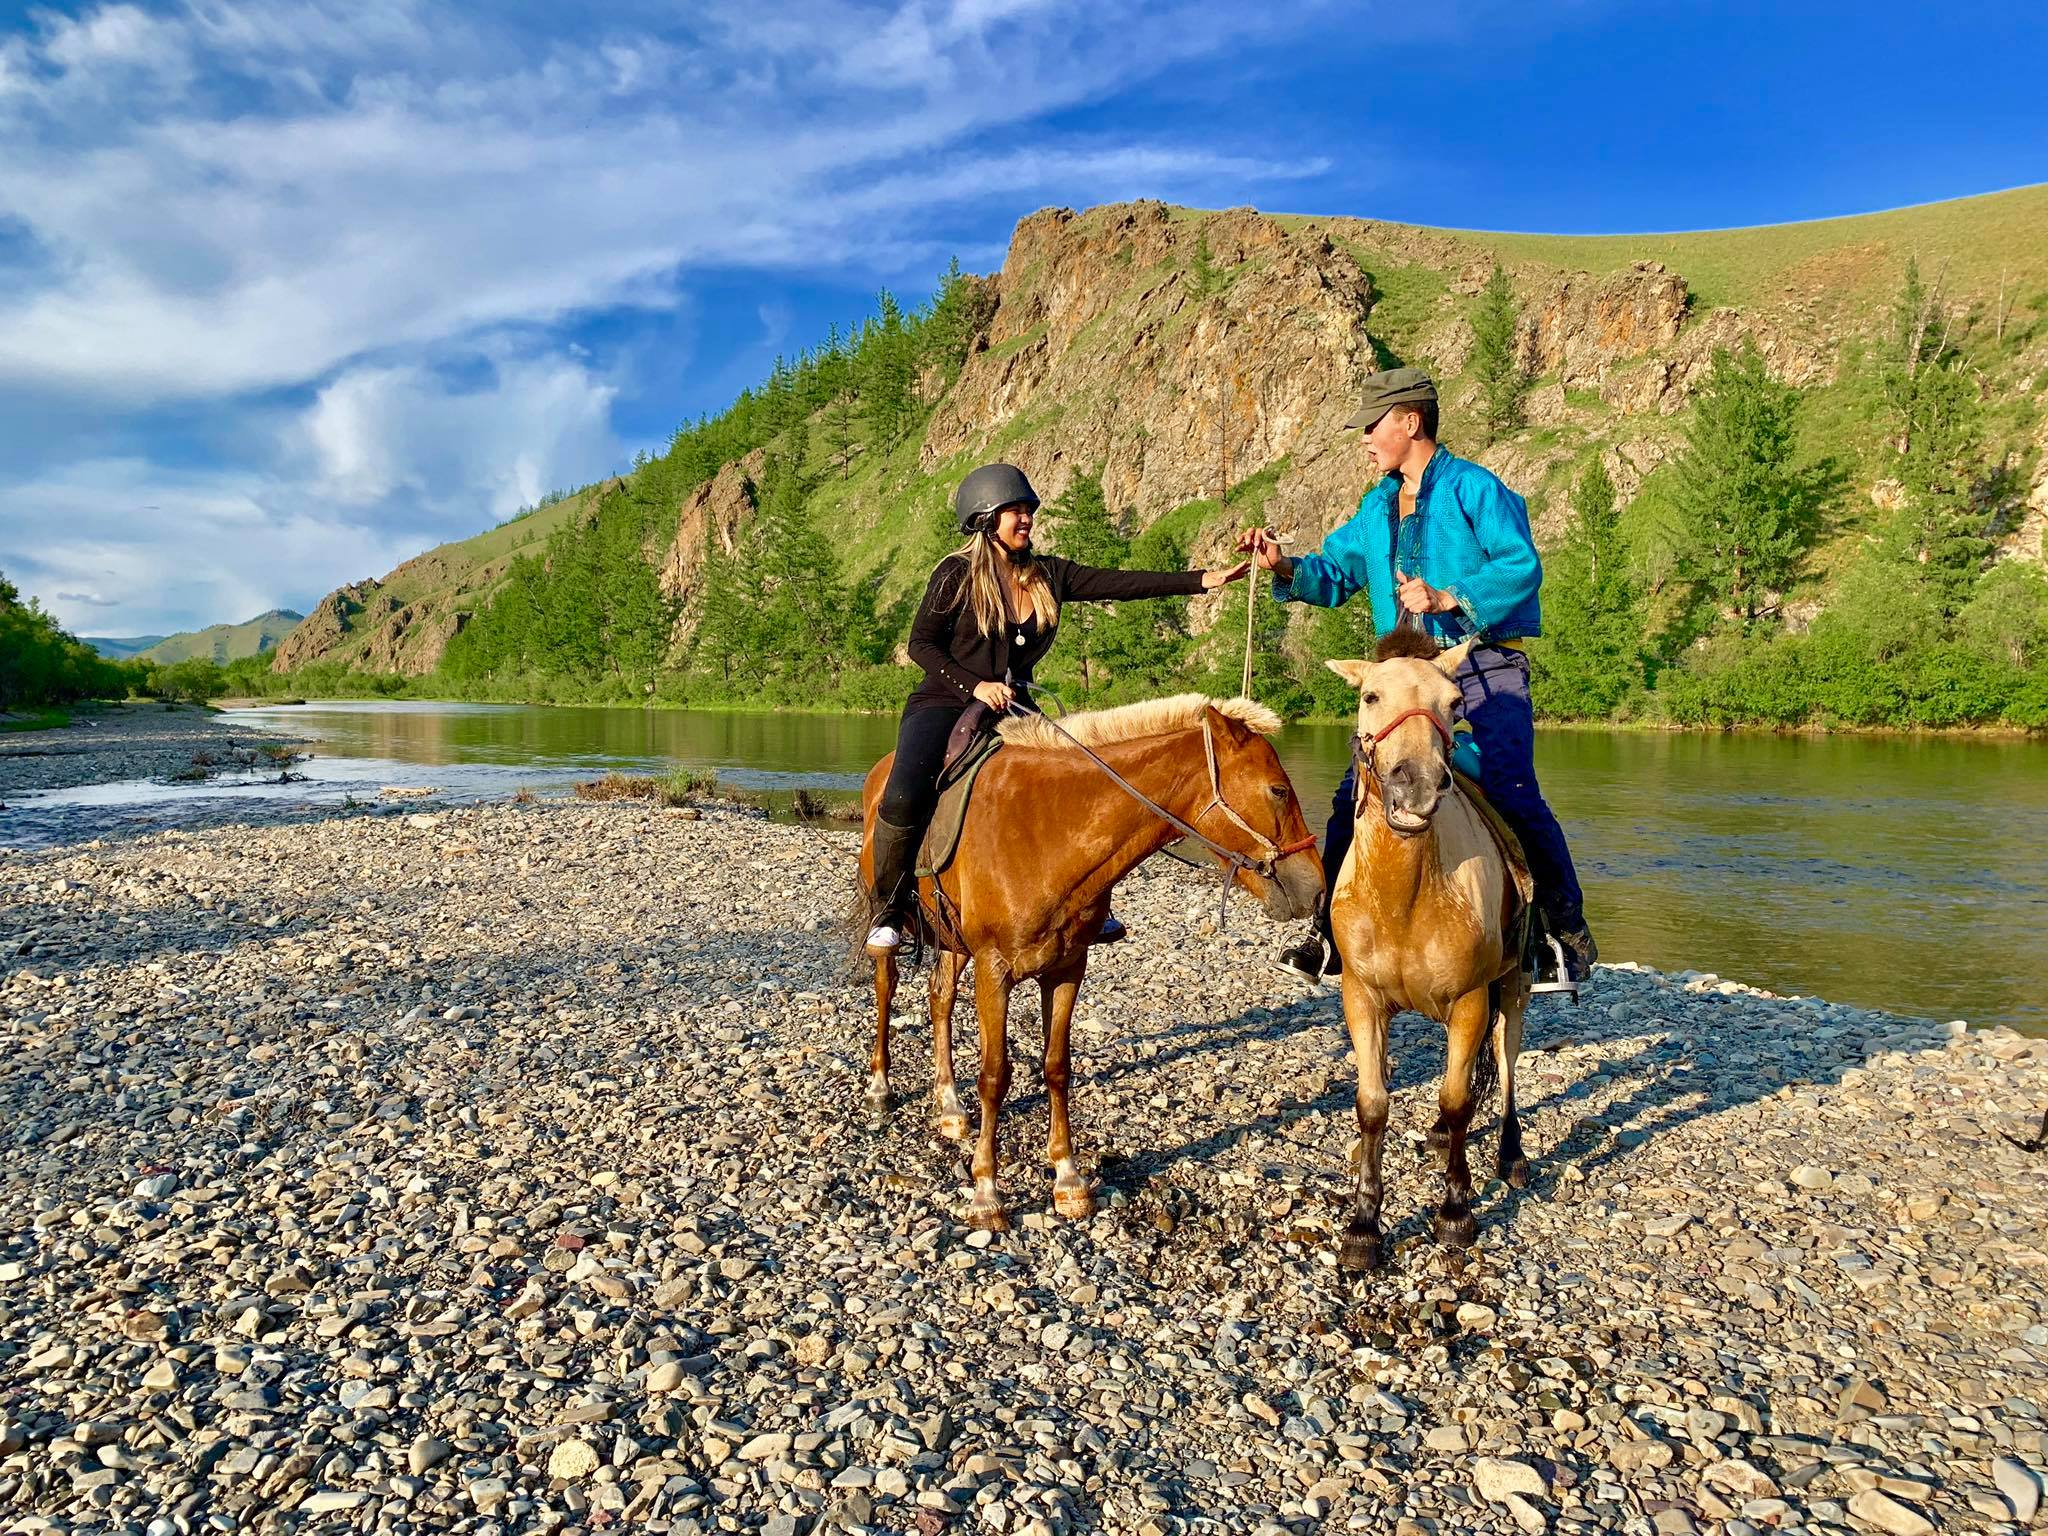 Kach Solo Travels in 2019 Hello from MONGOLIA - my 130th country2.jpg